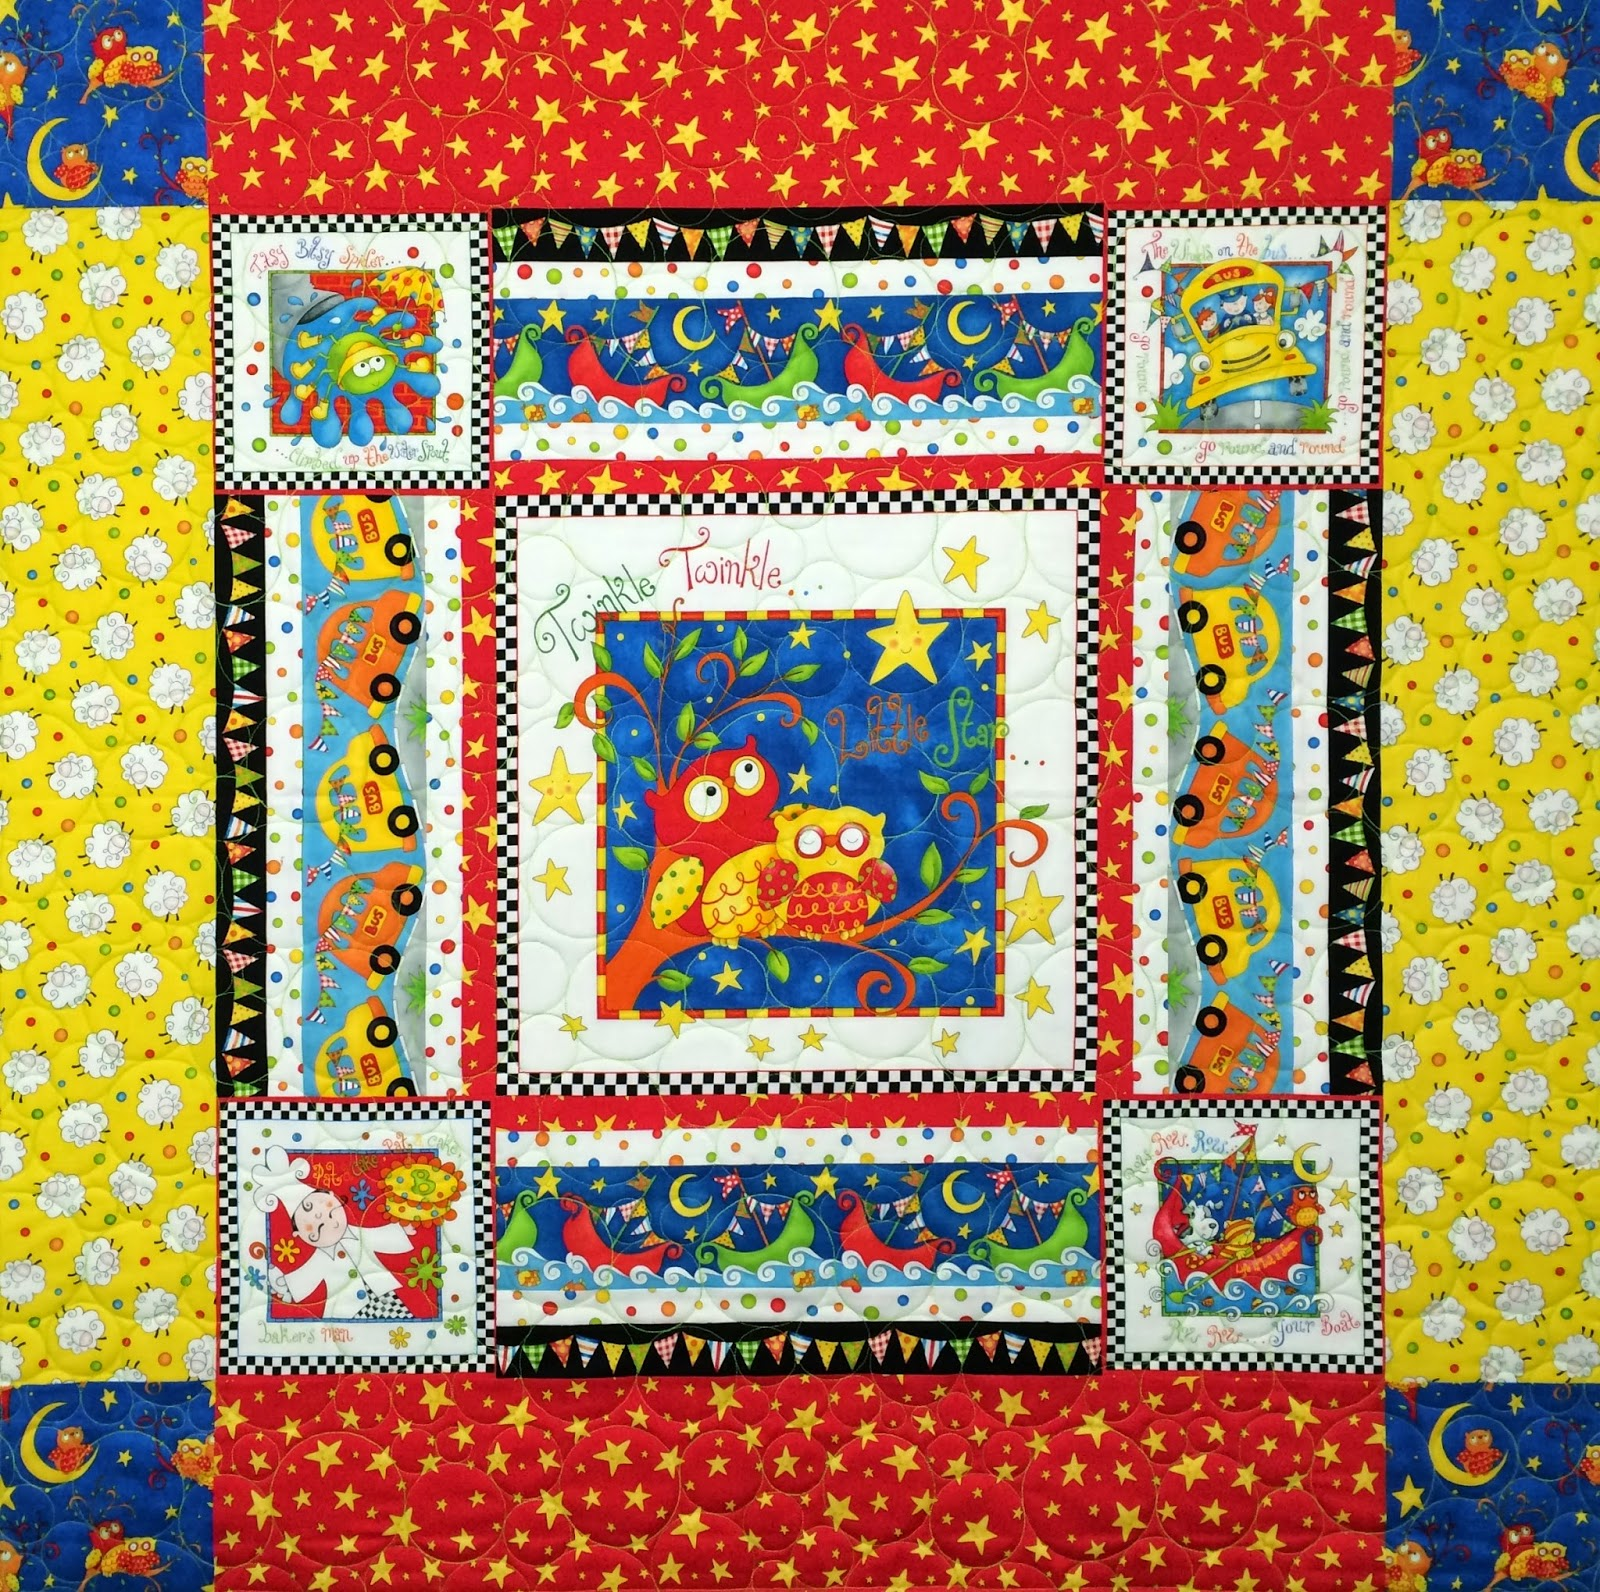 Mette Brown's Nursery Rhymes Quilt